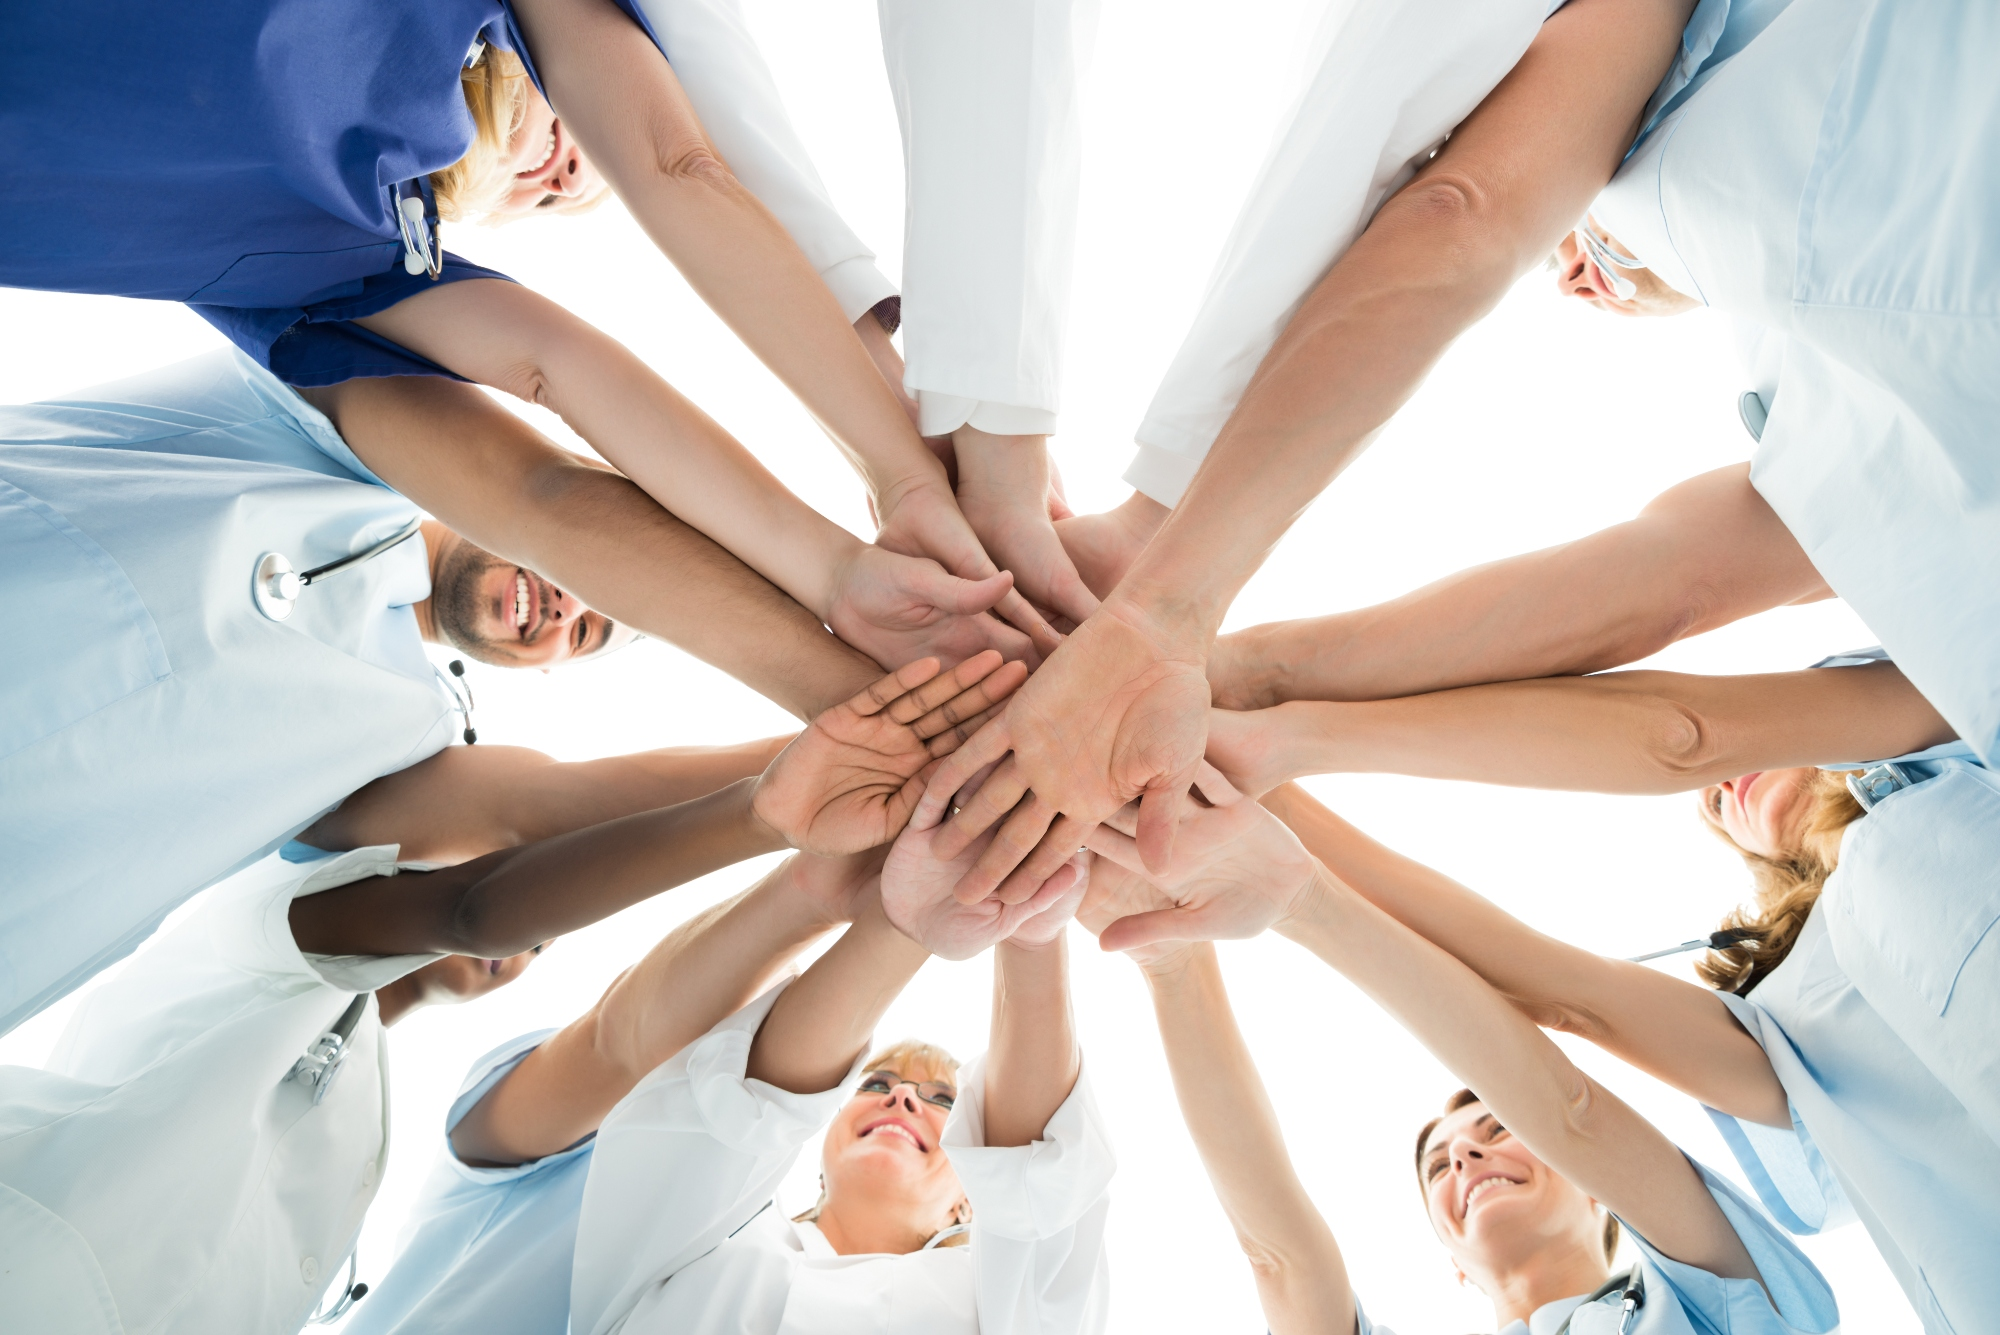 Fostering a positive culture at dental practice